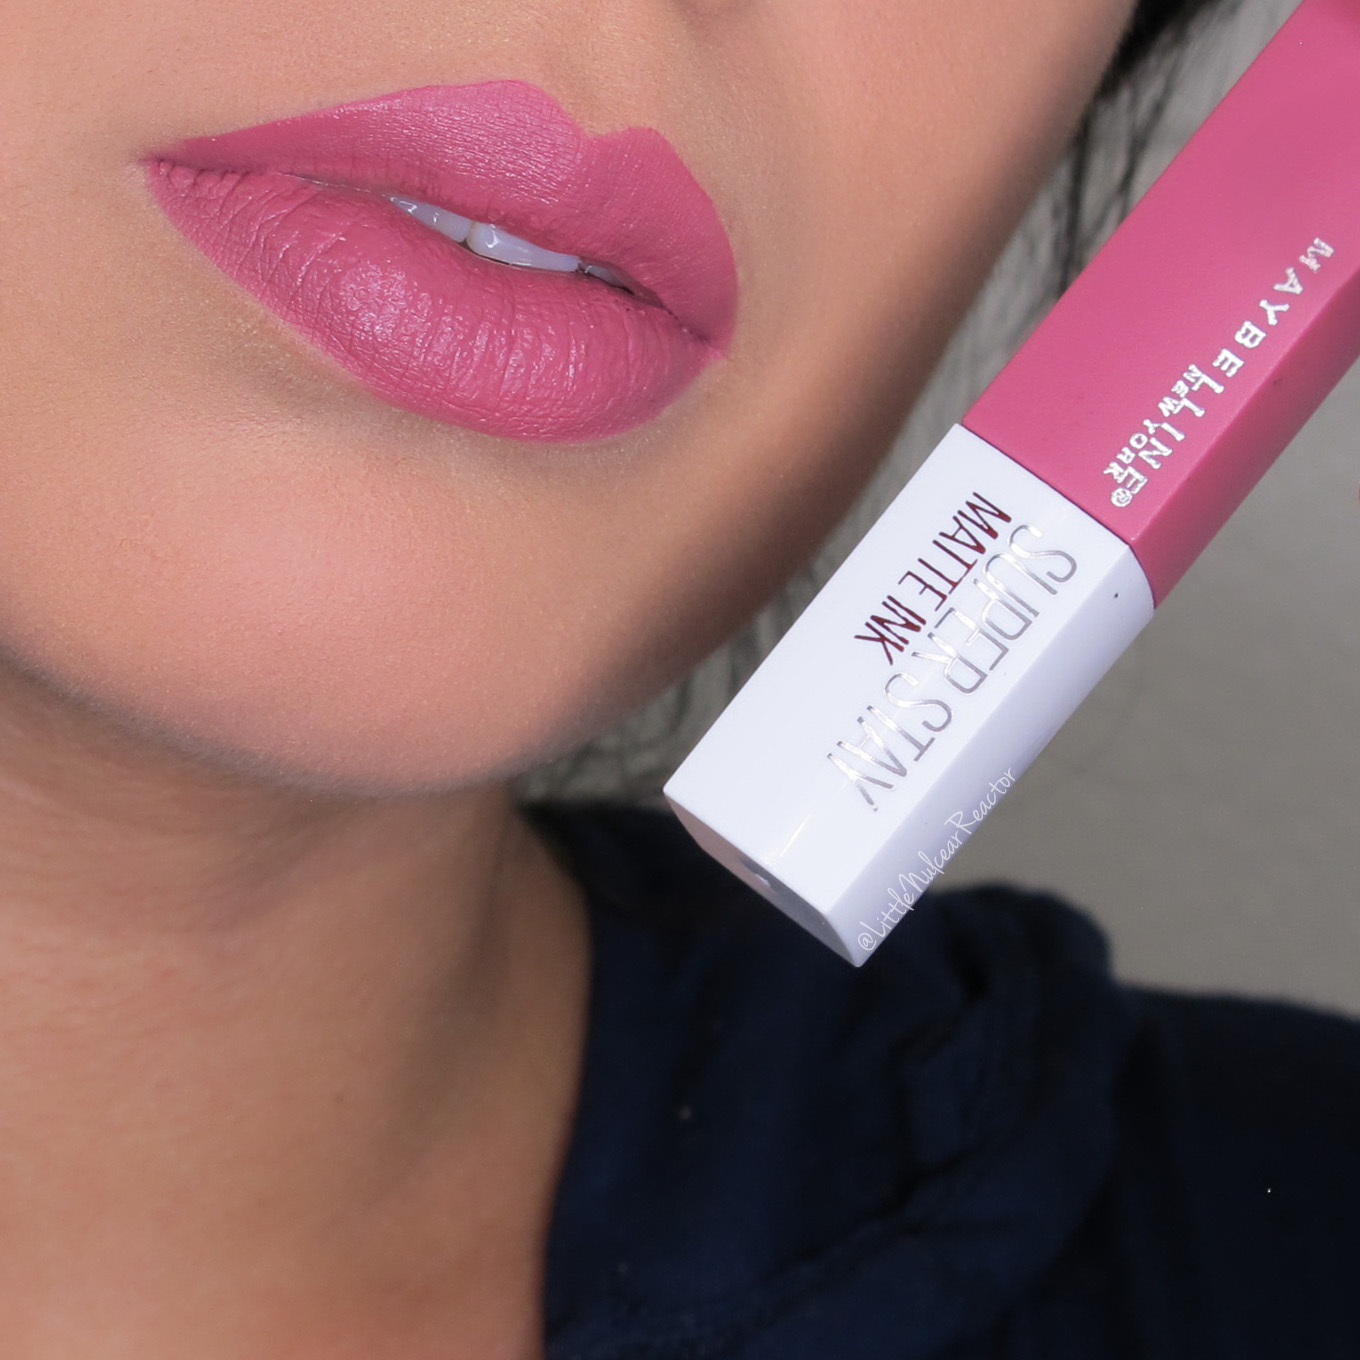 Maybelline Superstay Mattw Ink Lipstick Review Littlenuclearreactor